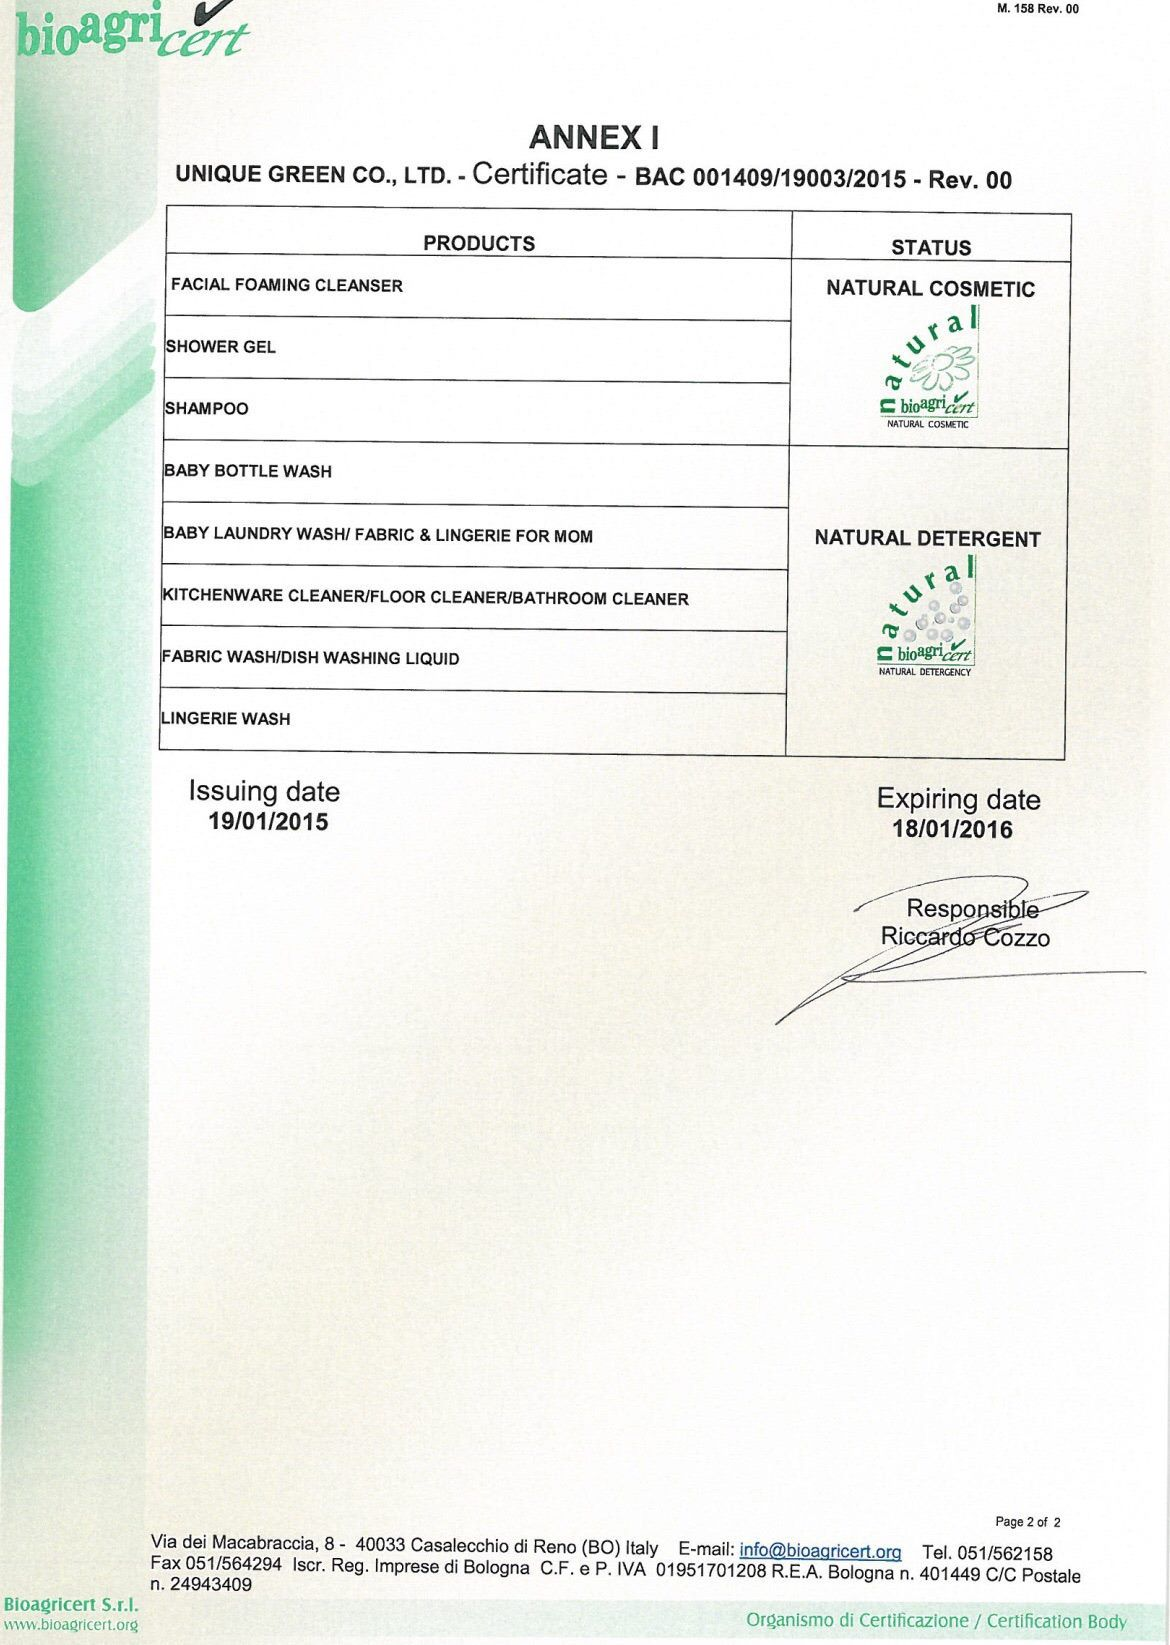 Natural Organic Certificate Of Conformity Cbn Bac